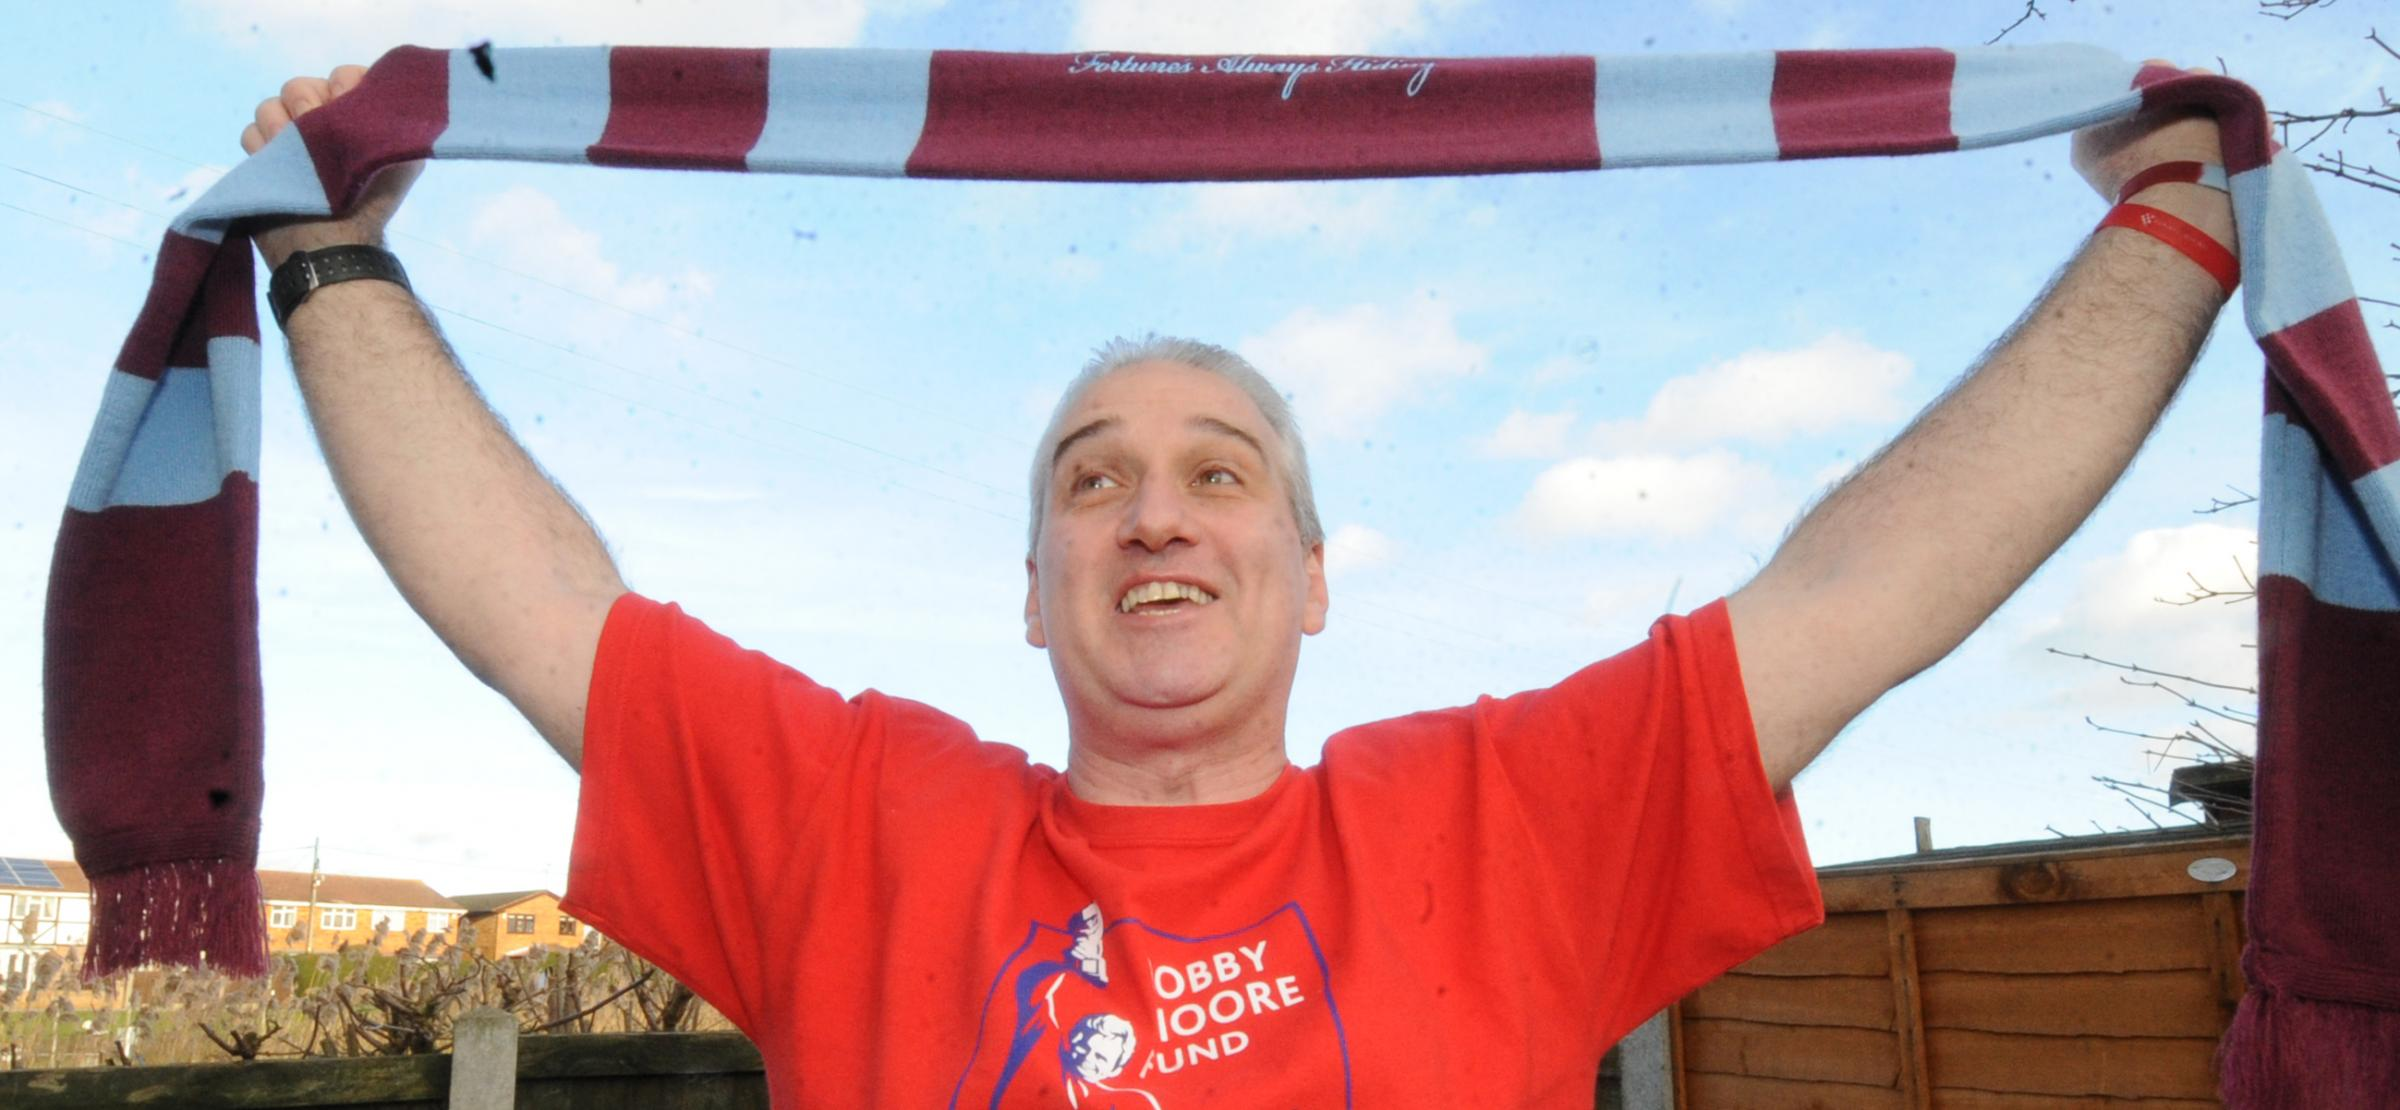 Die-hard fan to walk from Roots Hall to West Ham for Bobby Moore fund